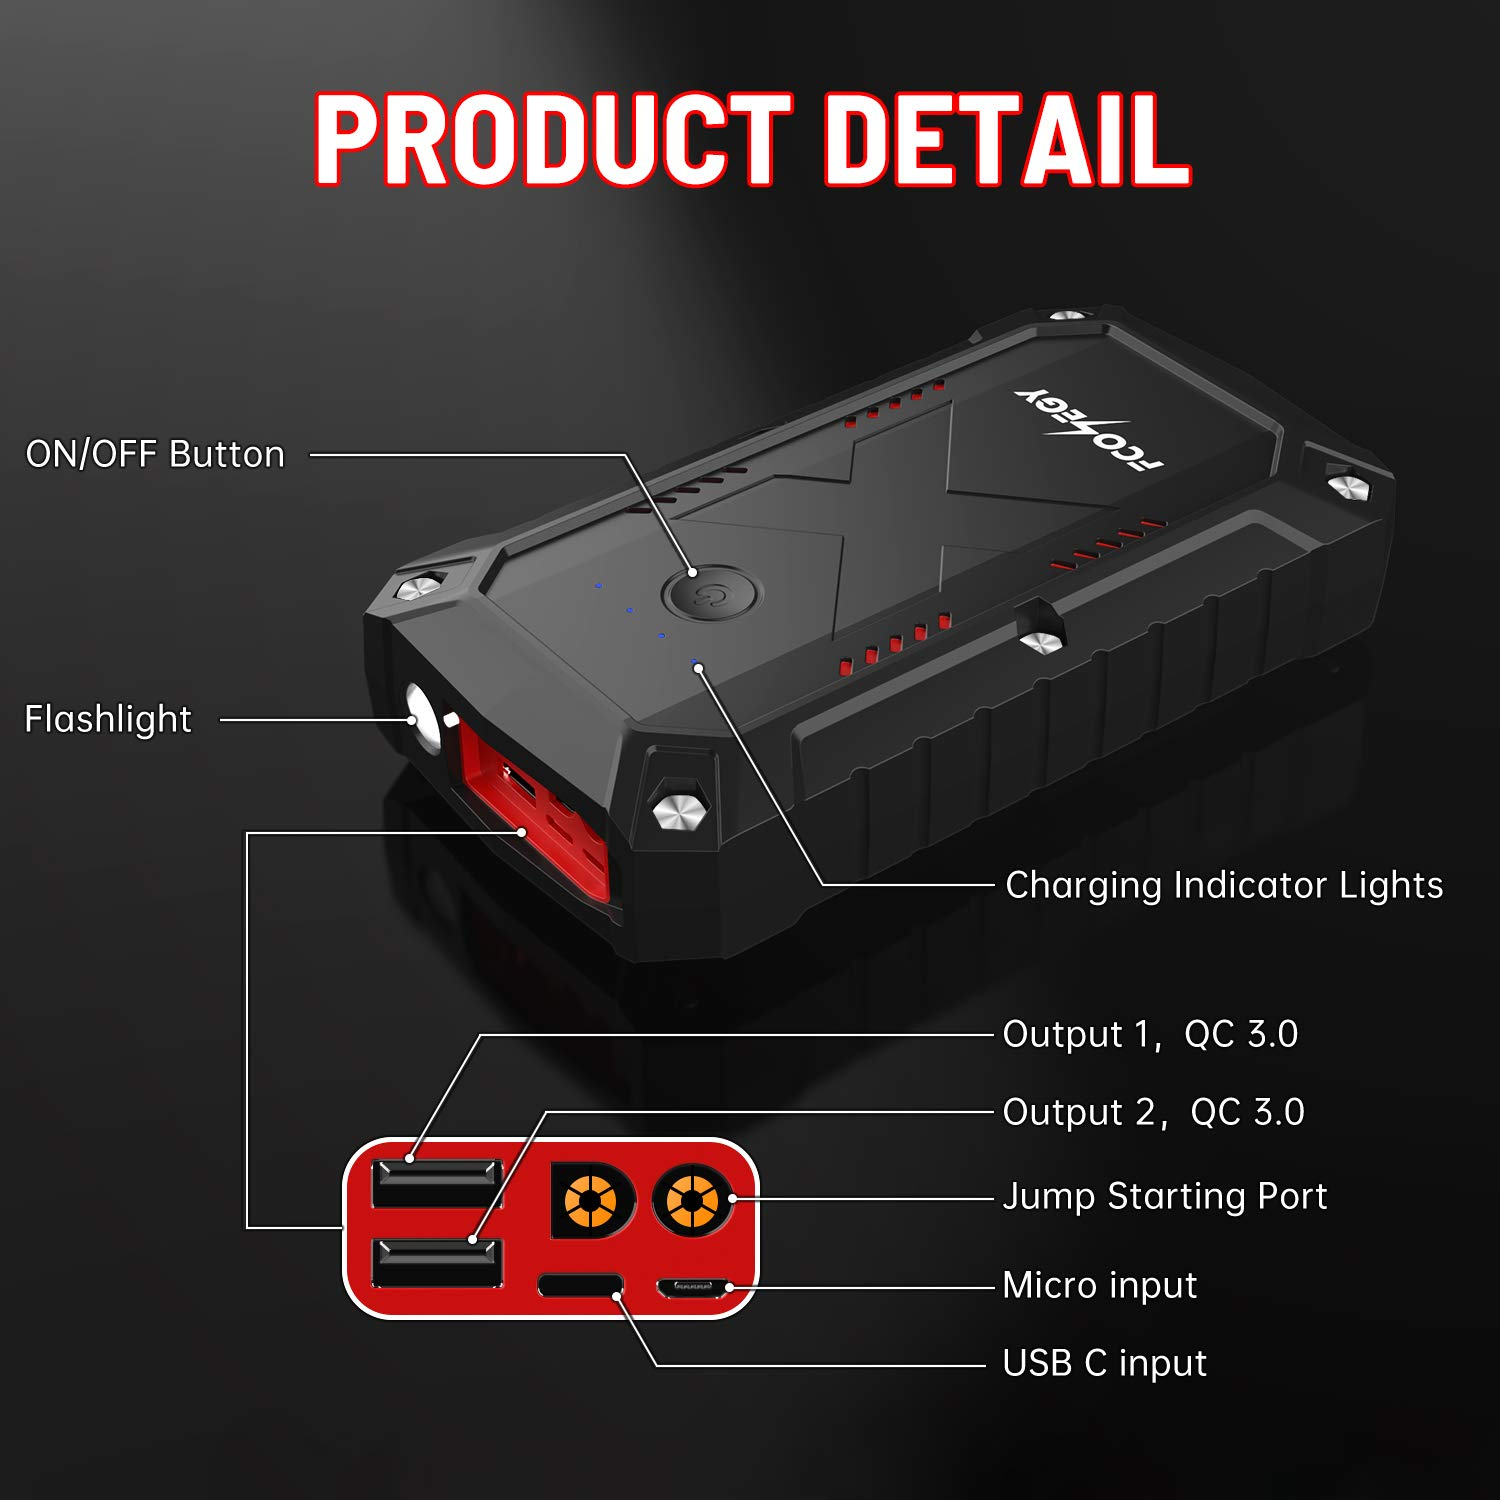 SANROCK Portable Car Battery Jump Starter 2500A 22800mAh 12V Auto Portable Power Pack Battery Booster Built-in LED Light in/&Out Type-C with USB Qick Charge up to 8.0L Gas or 8.0L Diesel